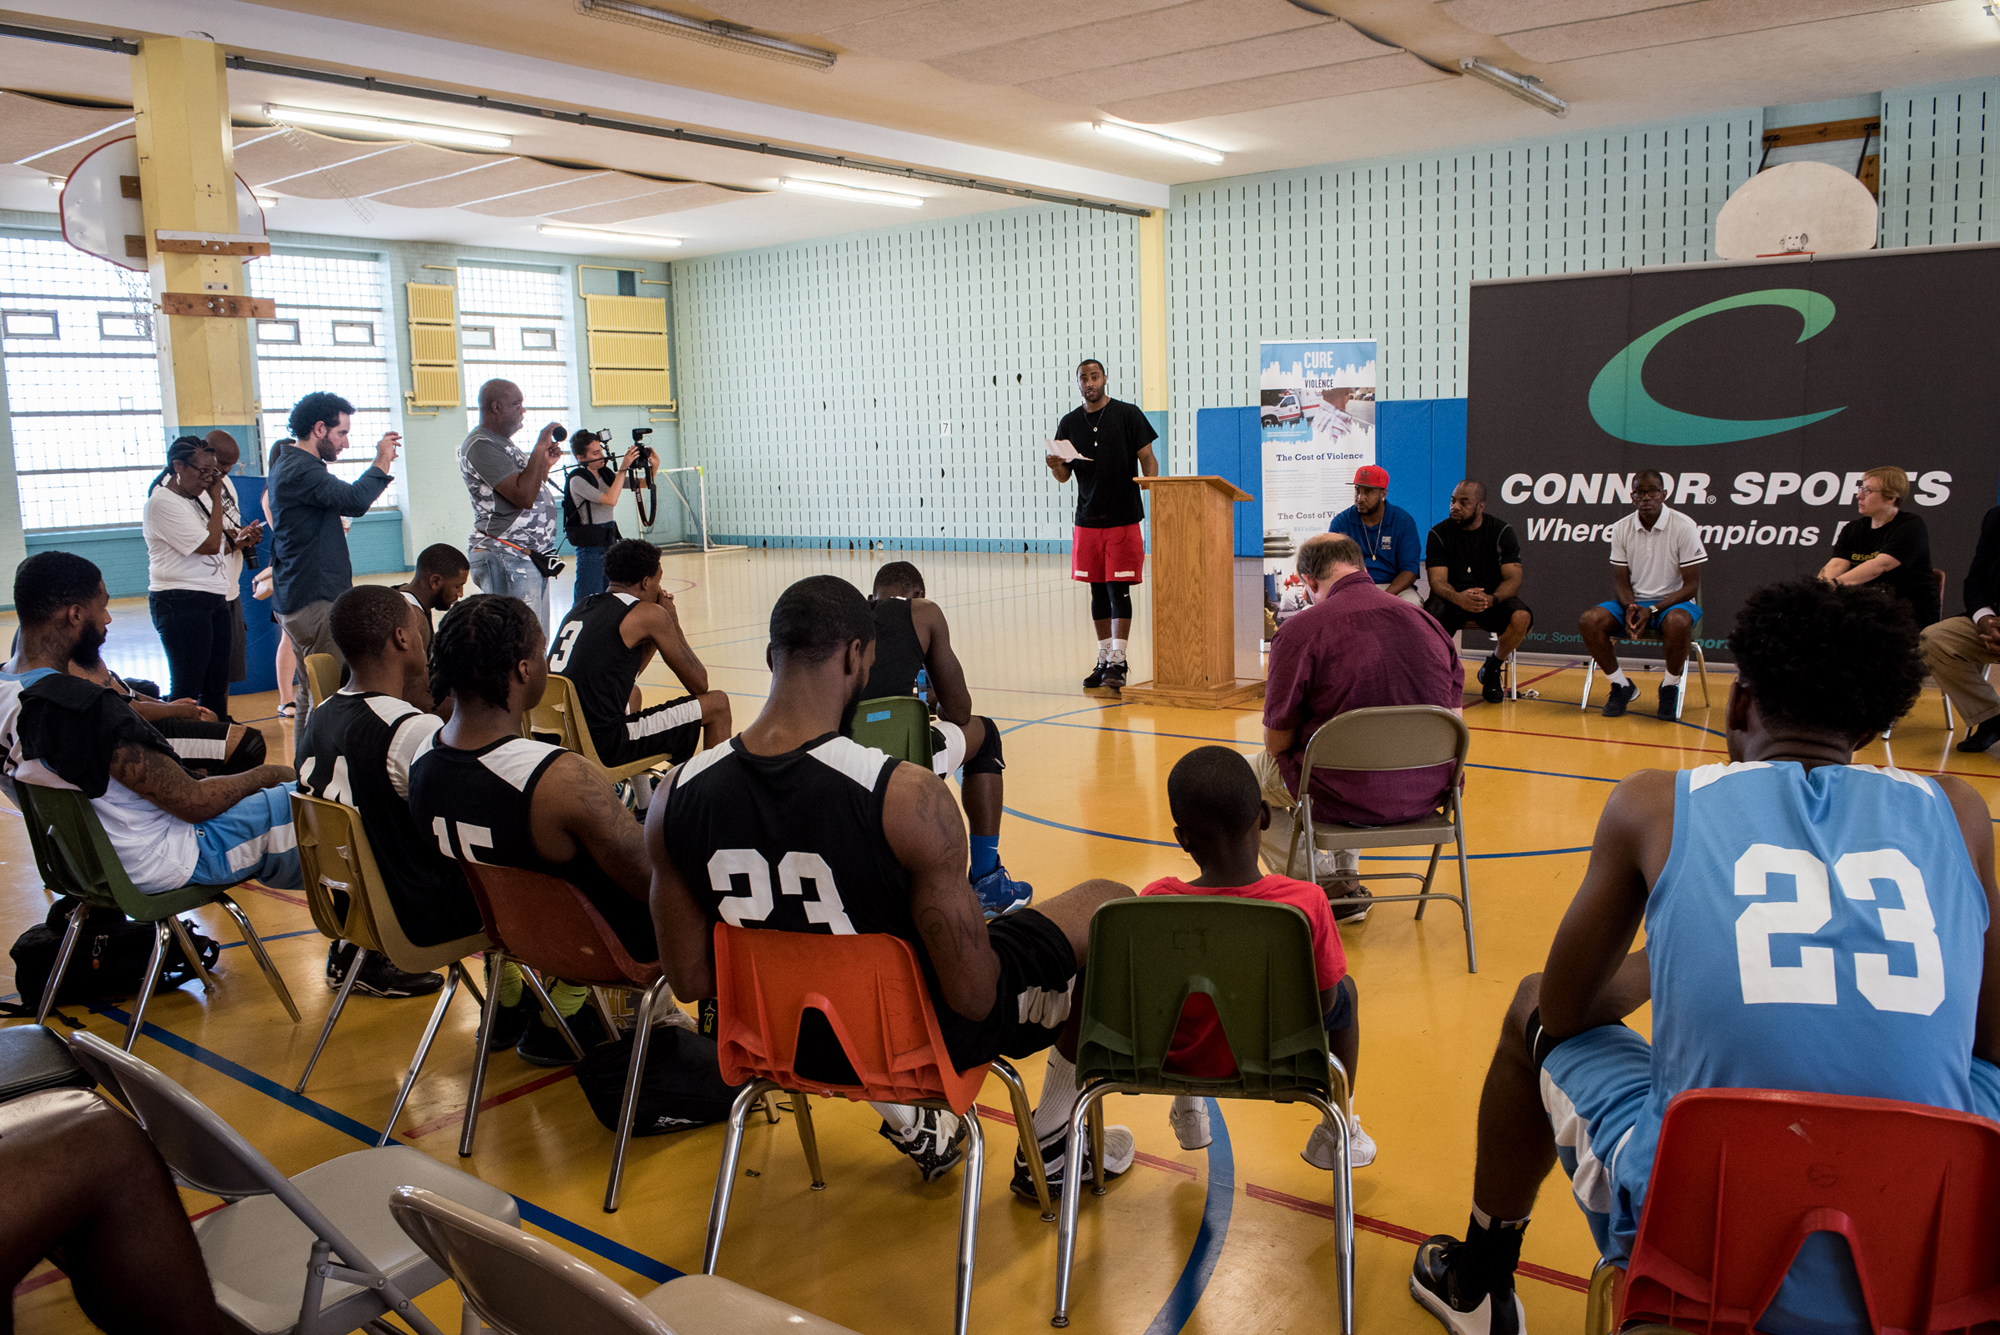 NBA player Wayne Ellington Jr. of the Miami Heat, speaks during a panel about anti-gun violence to teams taking part in the first annual Philadelphia Peace Games tournament inside the Girard College Gymnasium in Philadelphia on Saturday, Aug. 20, 2016.